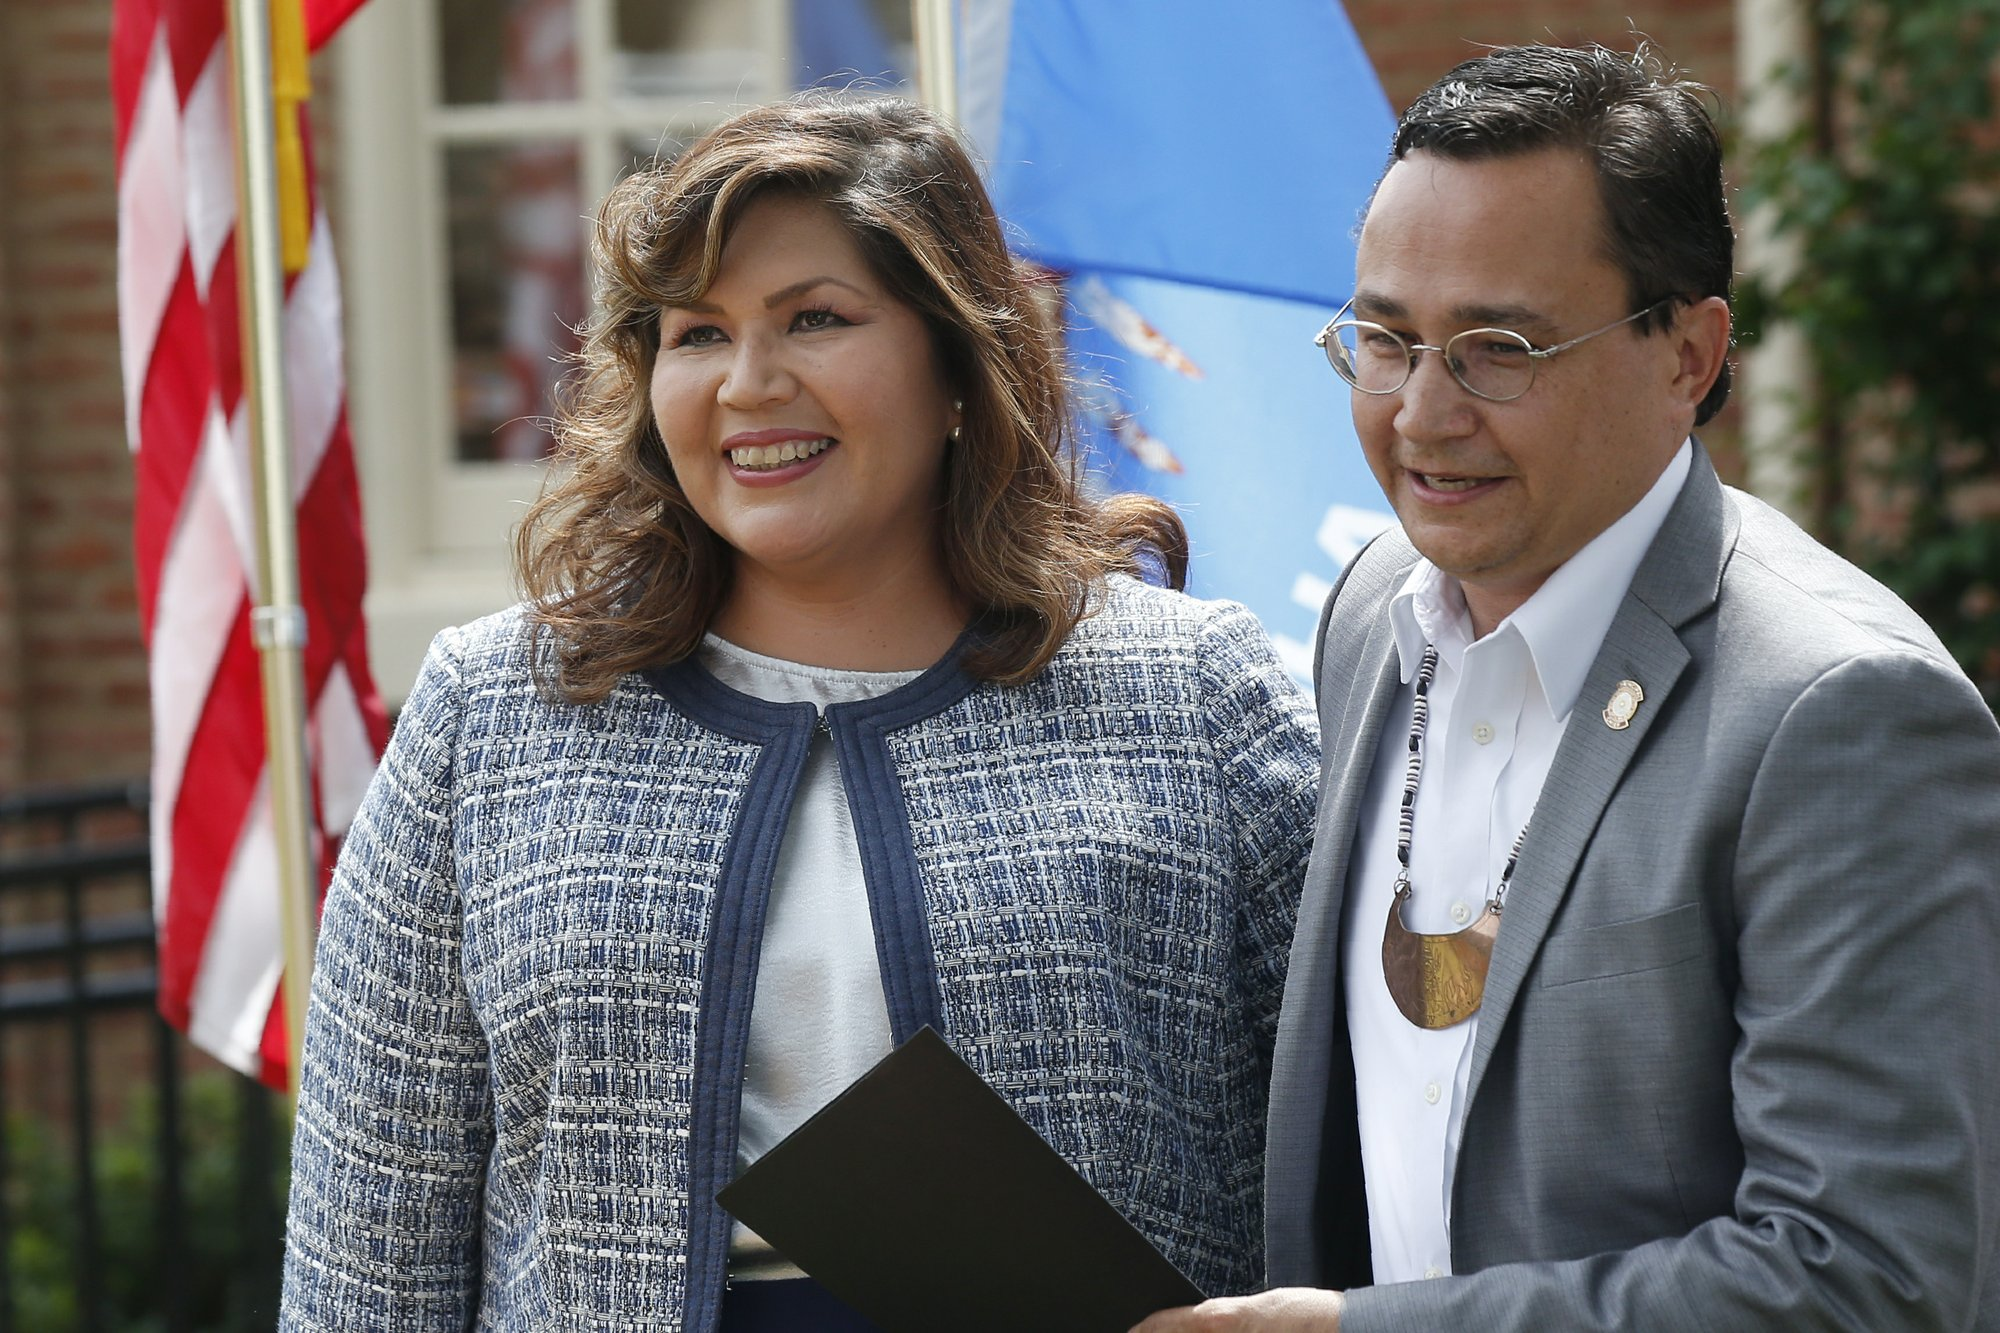 Cherokee chief says journey to seat US delegate will be long